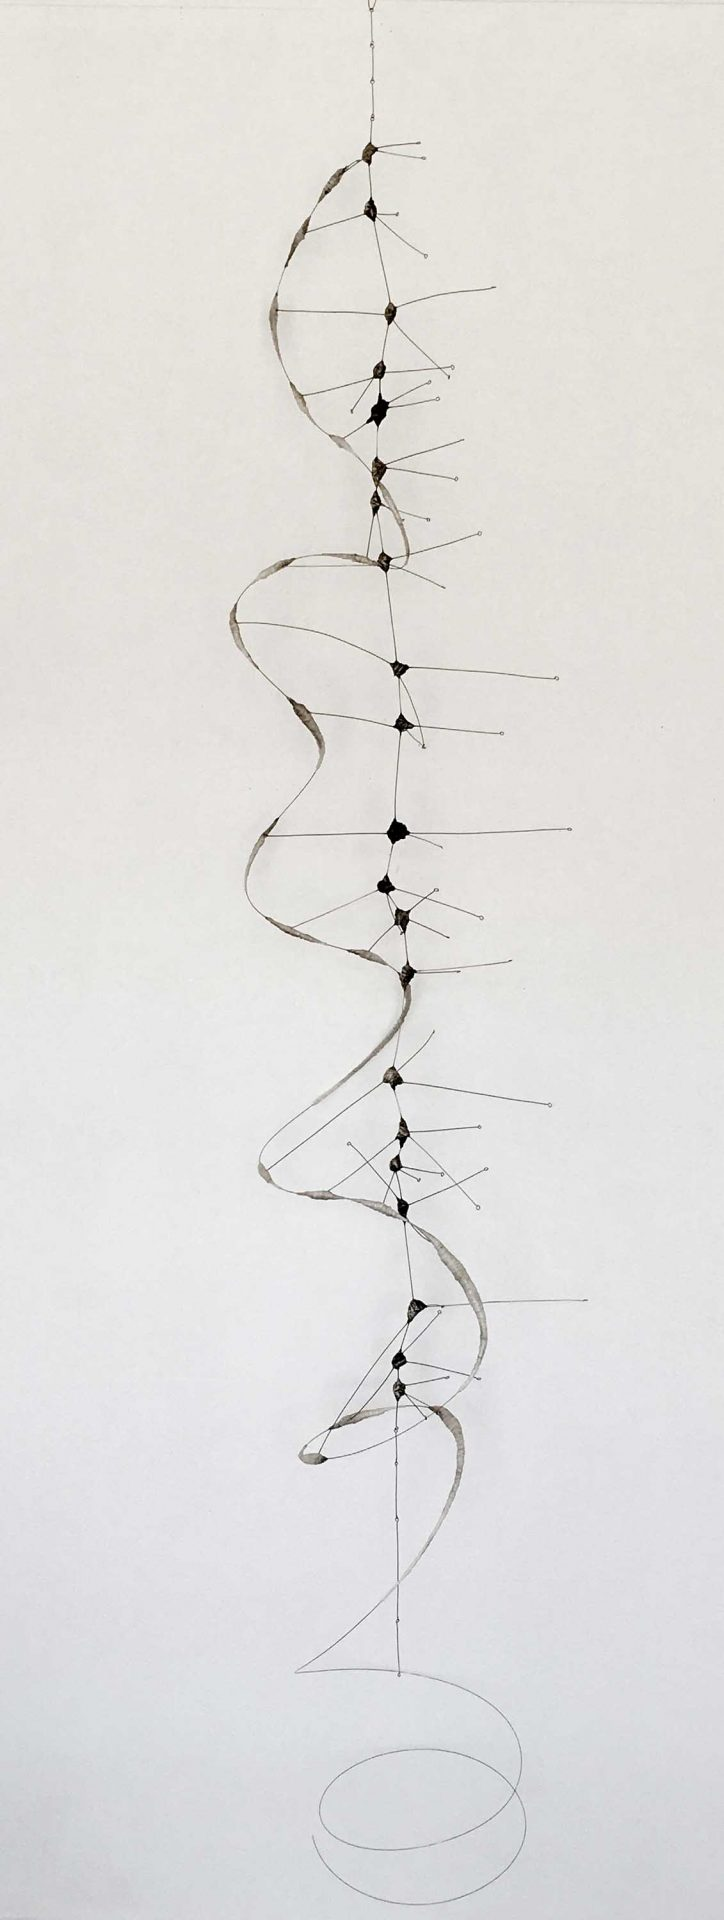 Untitled, Linear